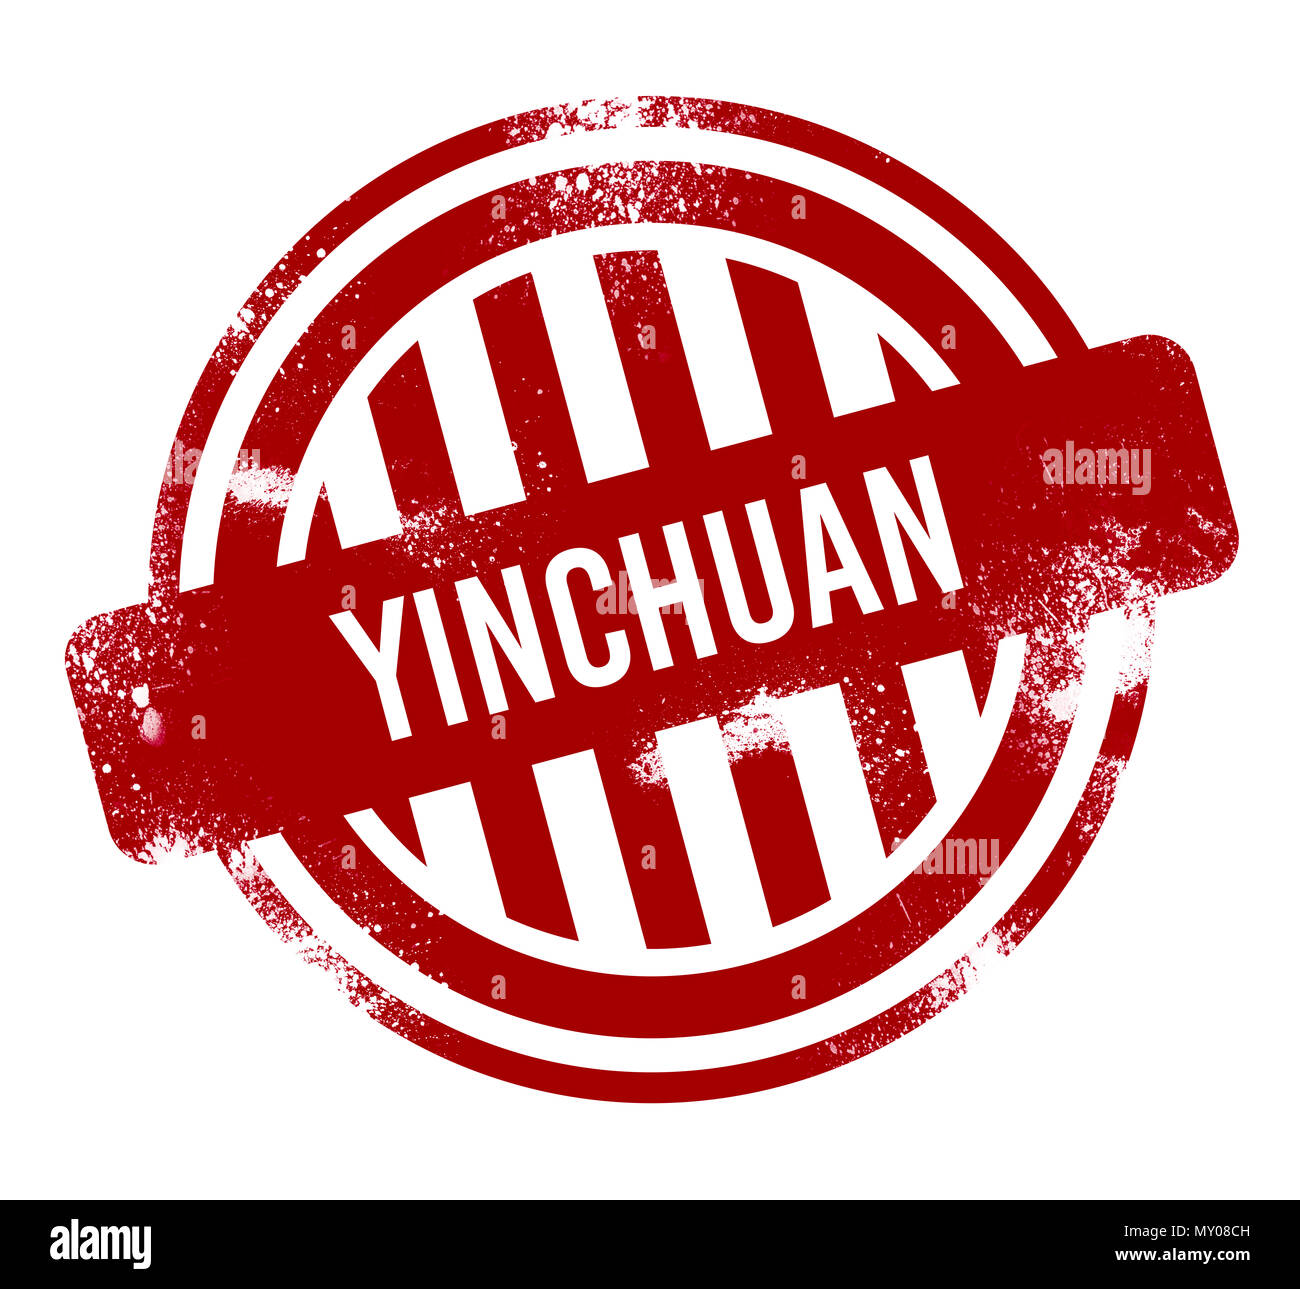 Yinchuan - Red grunge button, stamp Stock Photo